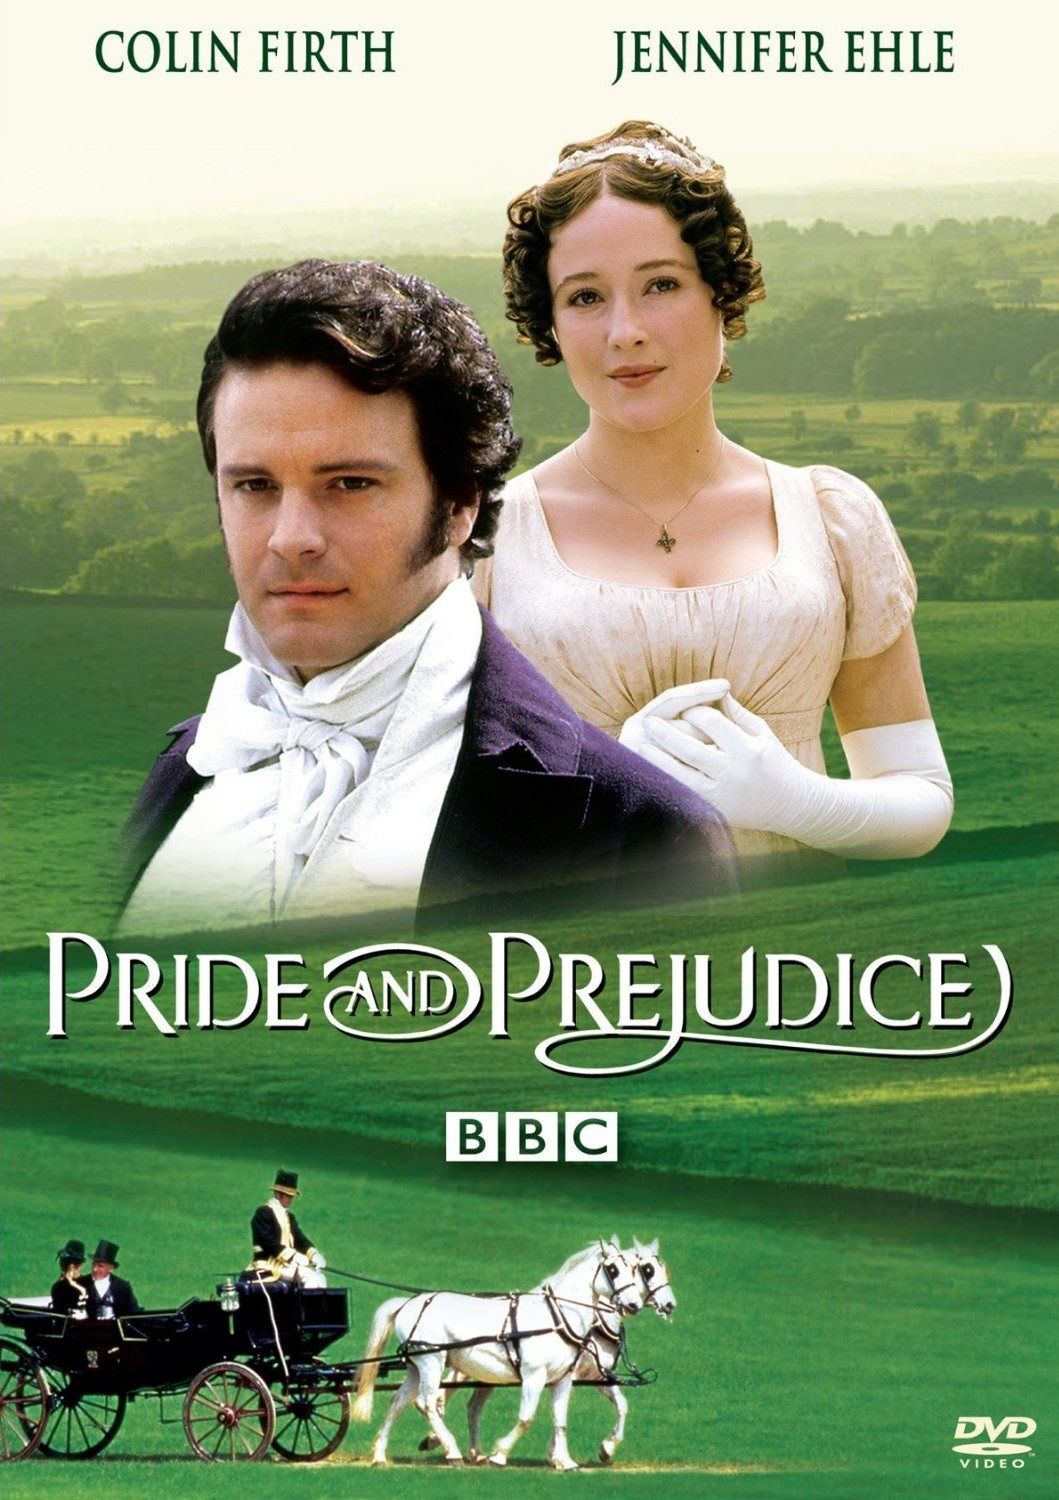 pride and prejudice 2005 movie download